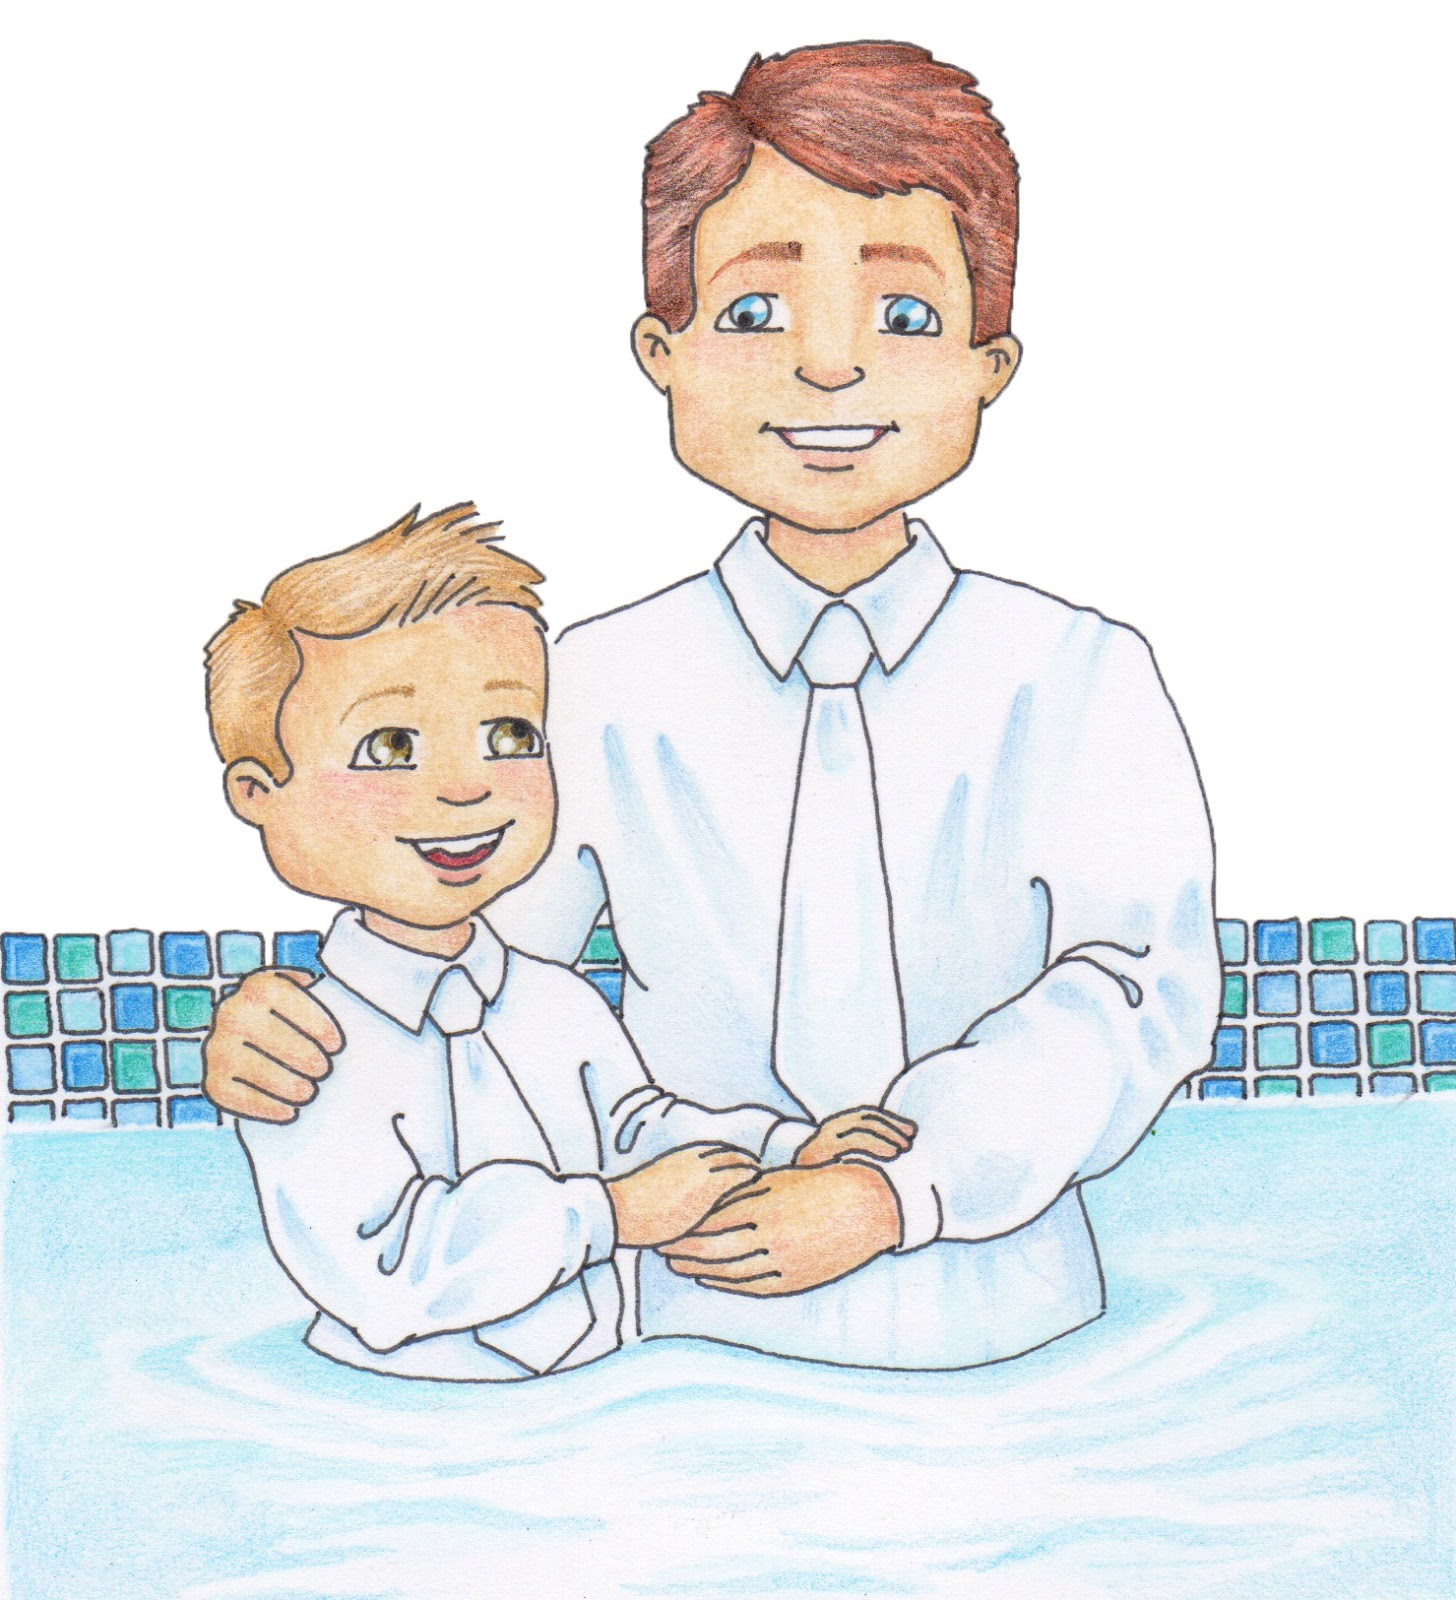 susan fitch design january 2013 rh susanfitchdesign blogspot com lds baptism clipart images lds baptism clipart images